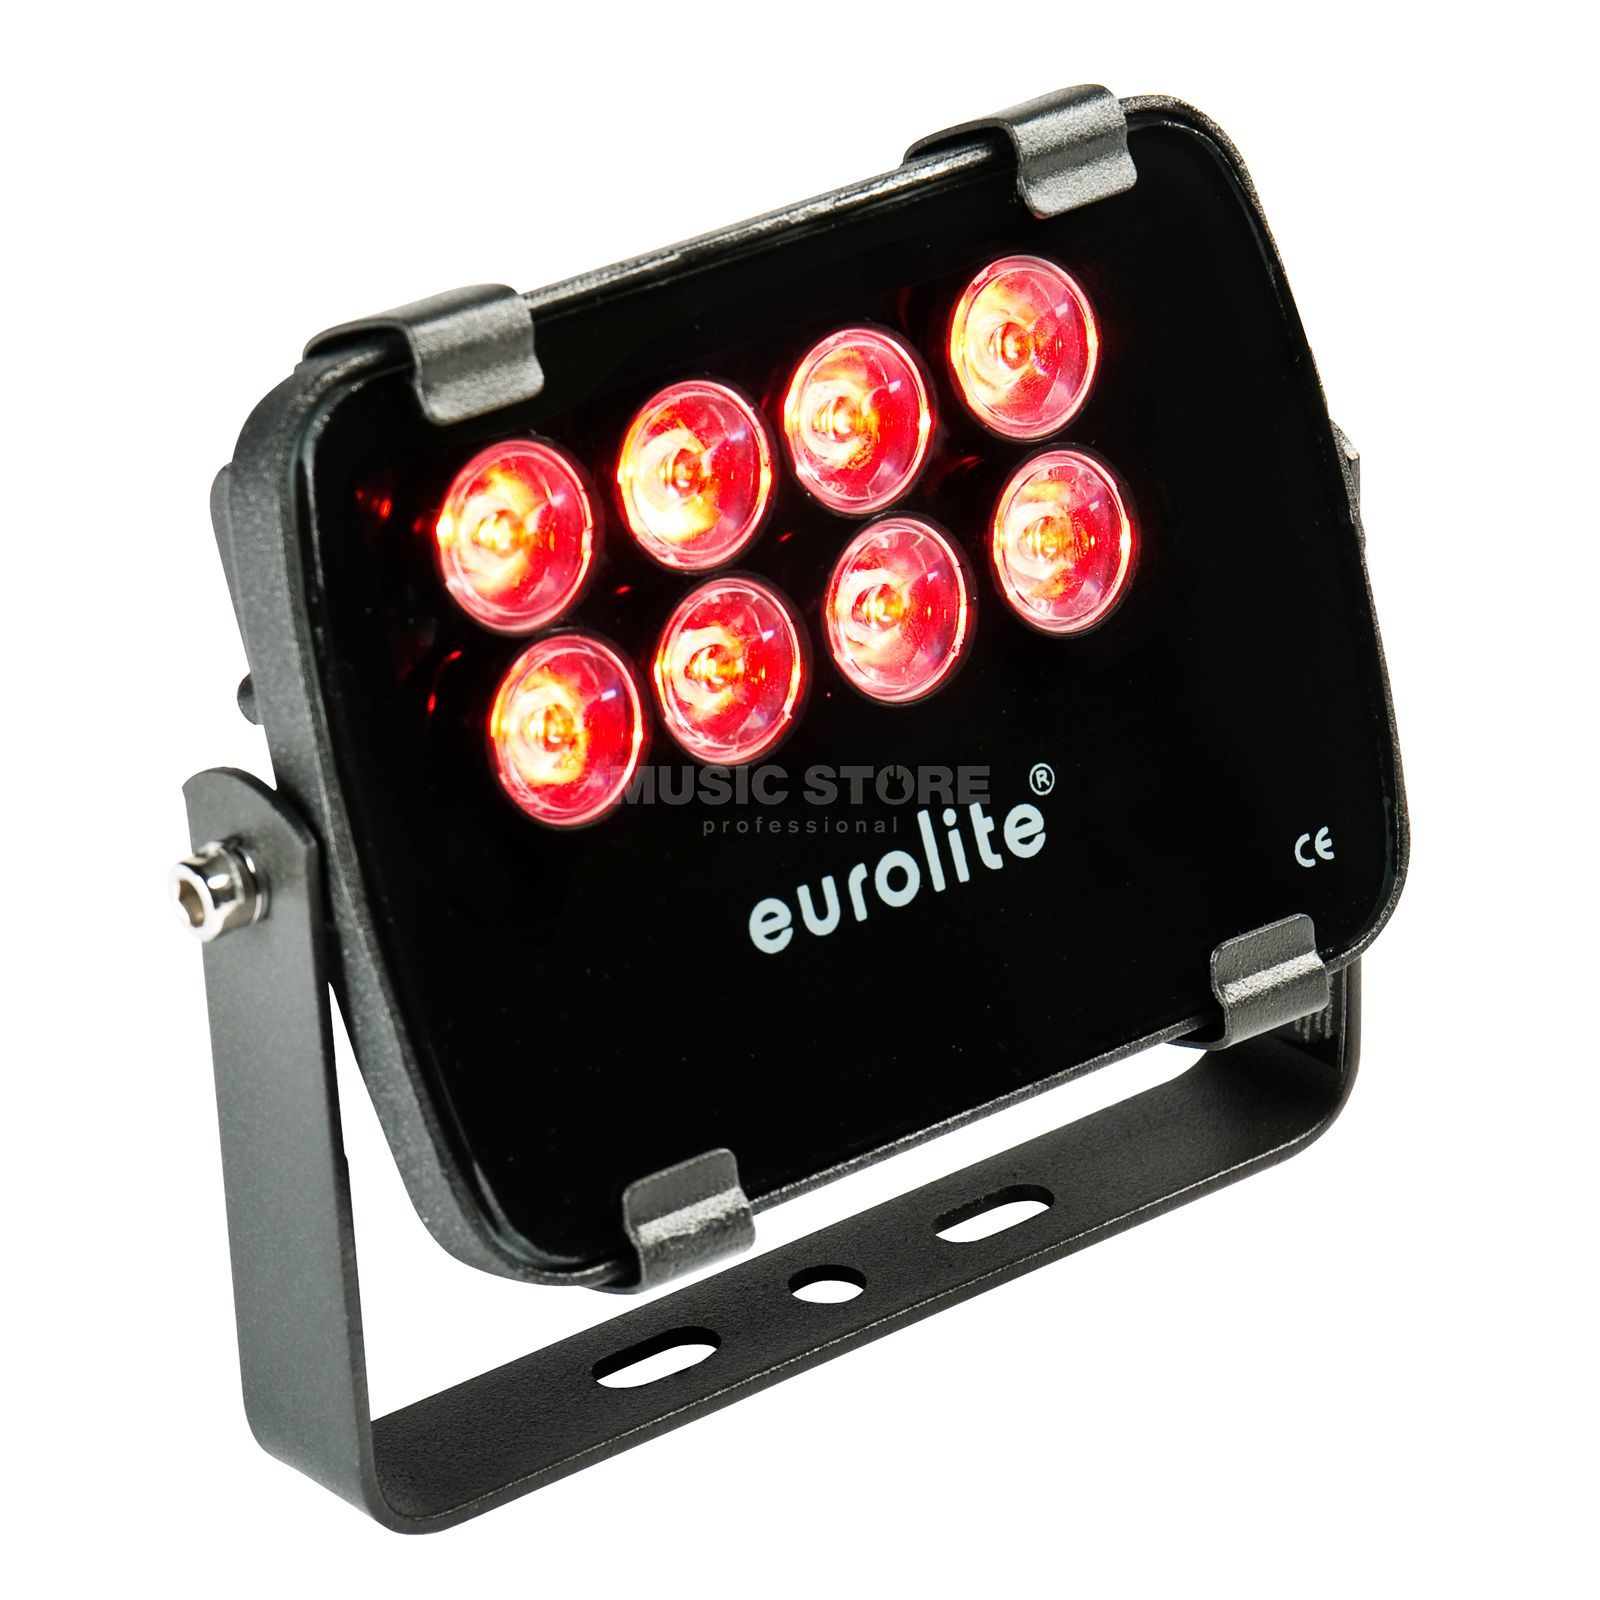 Eurolite LED IP FL-8 rot 30° IP 56, 8x1W Garden Light Produktbillede